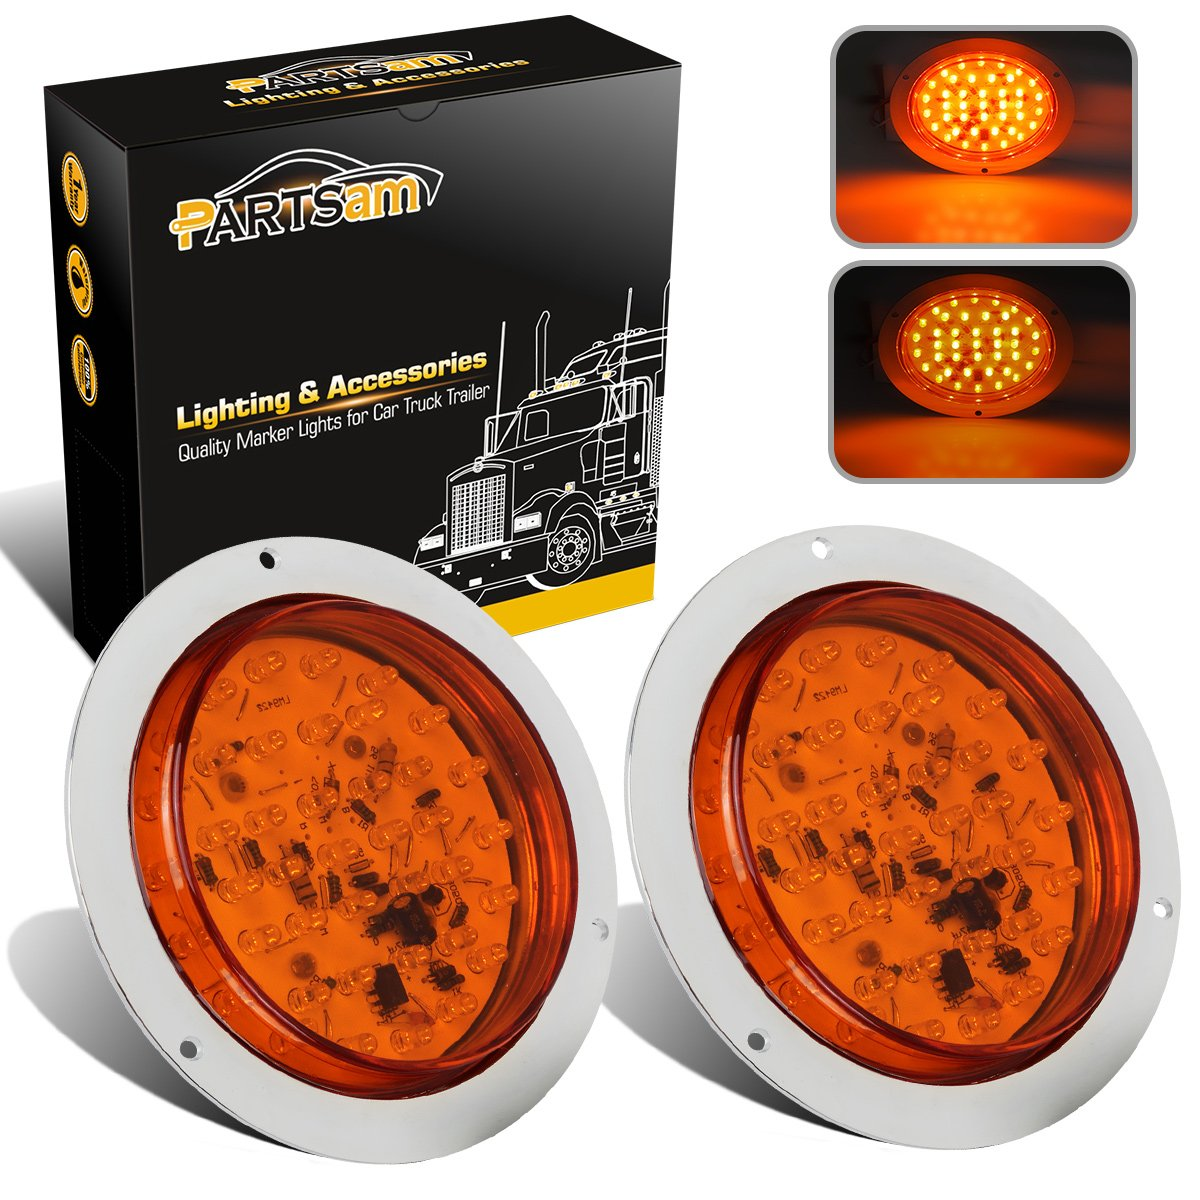 """Partsam 2Pcs 4"""" Round Amber LED Trailer Turn Signal and Parking Lights 40 Diodes Flange Mount,Yellow Flange Mount 4″ Round LED Front Rear Turn Signal Marker Lights"""